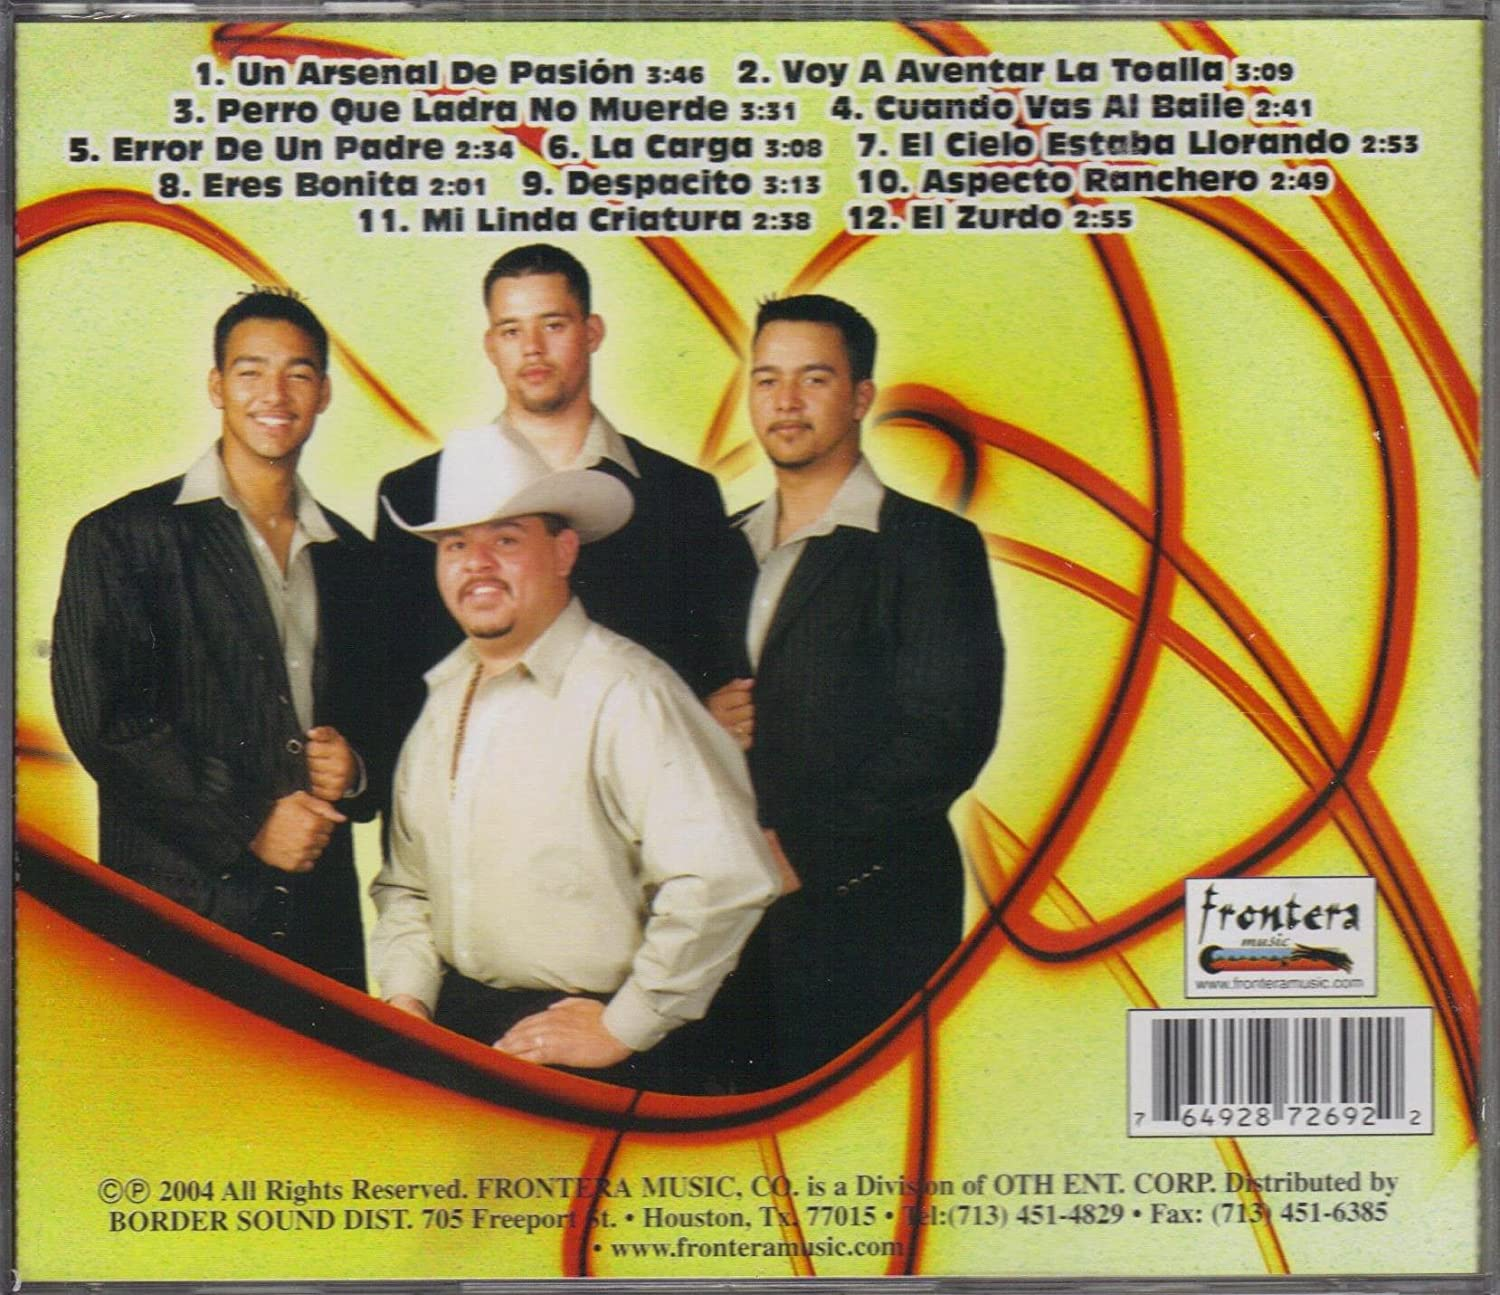 FRONTERA MUSIC CD 2004 - Grupo Feroz De Gerardo Robles, perro Que Ladra No Muerde... - Amazon.com Music